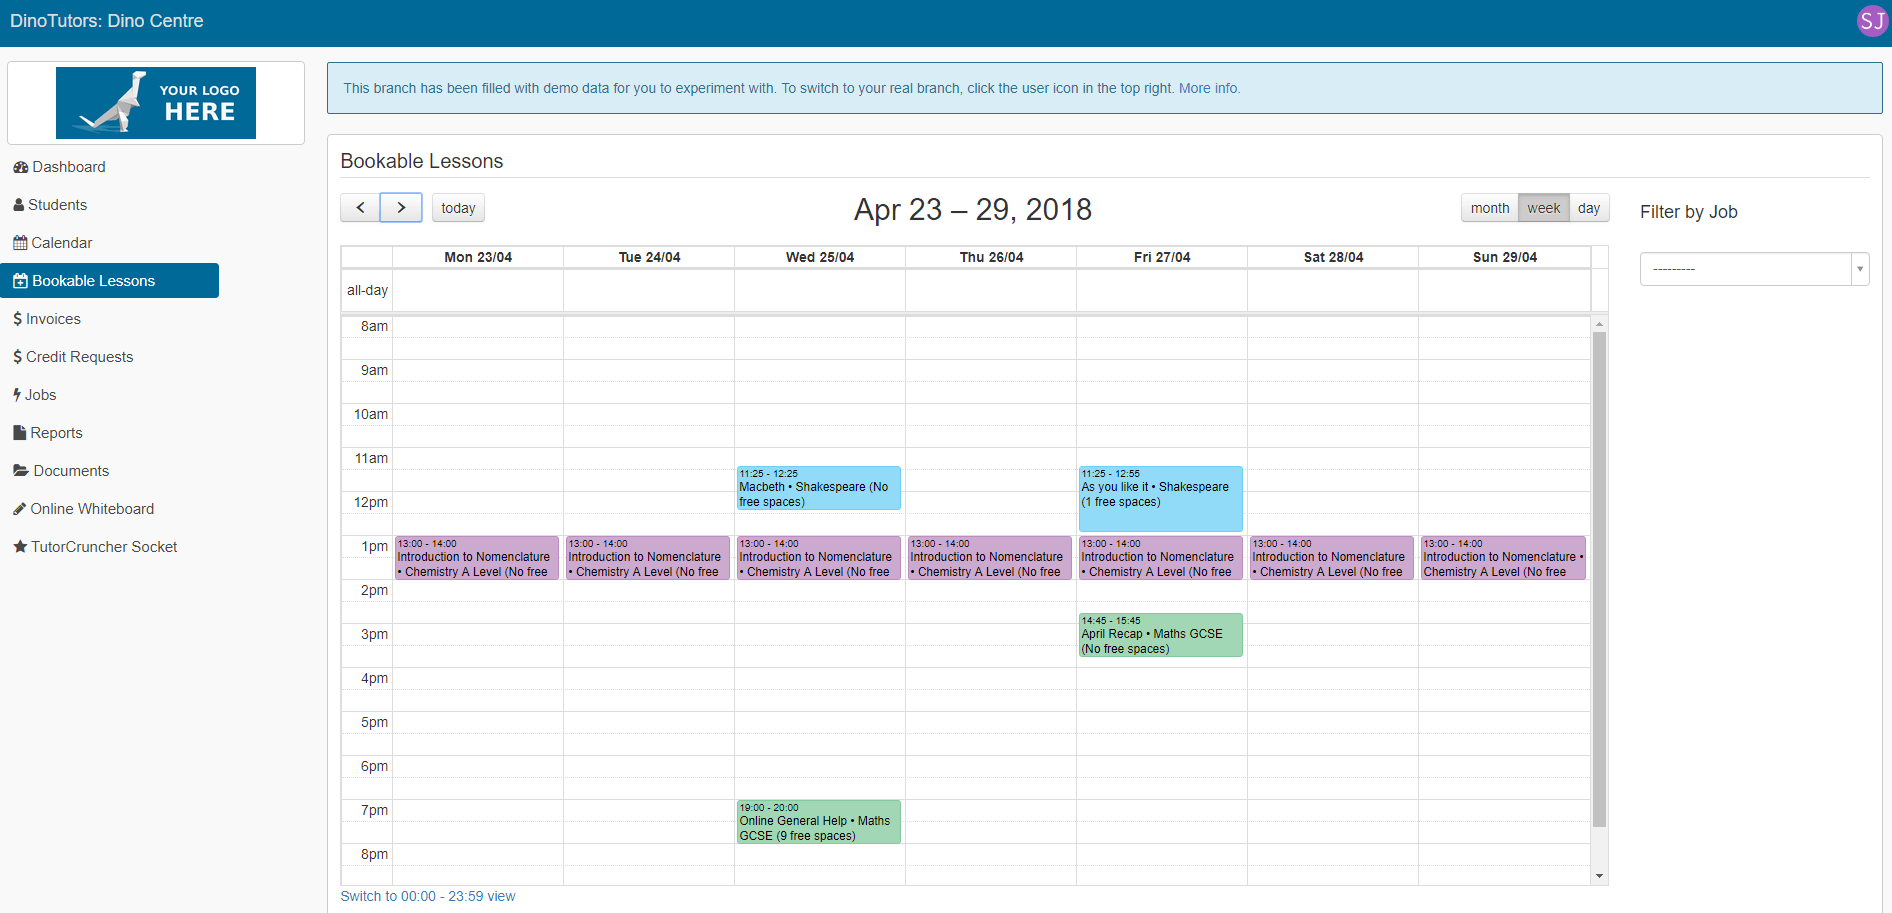 Clients can book lessons from the calendar.